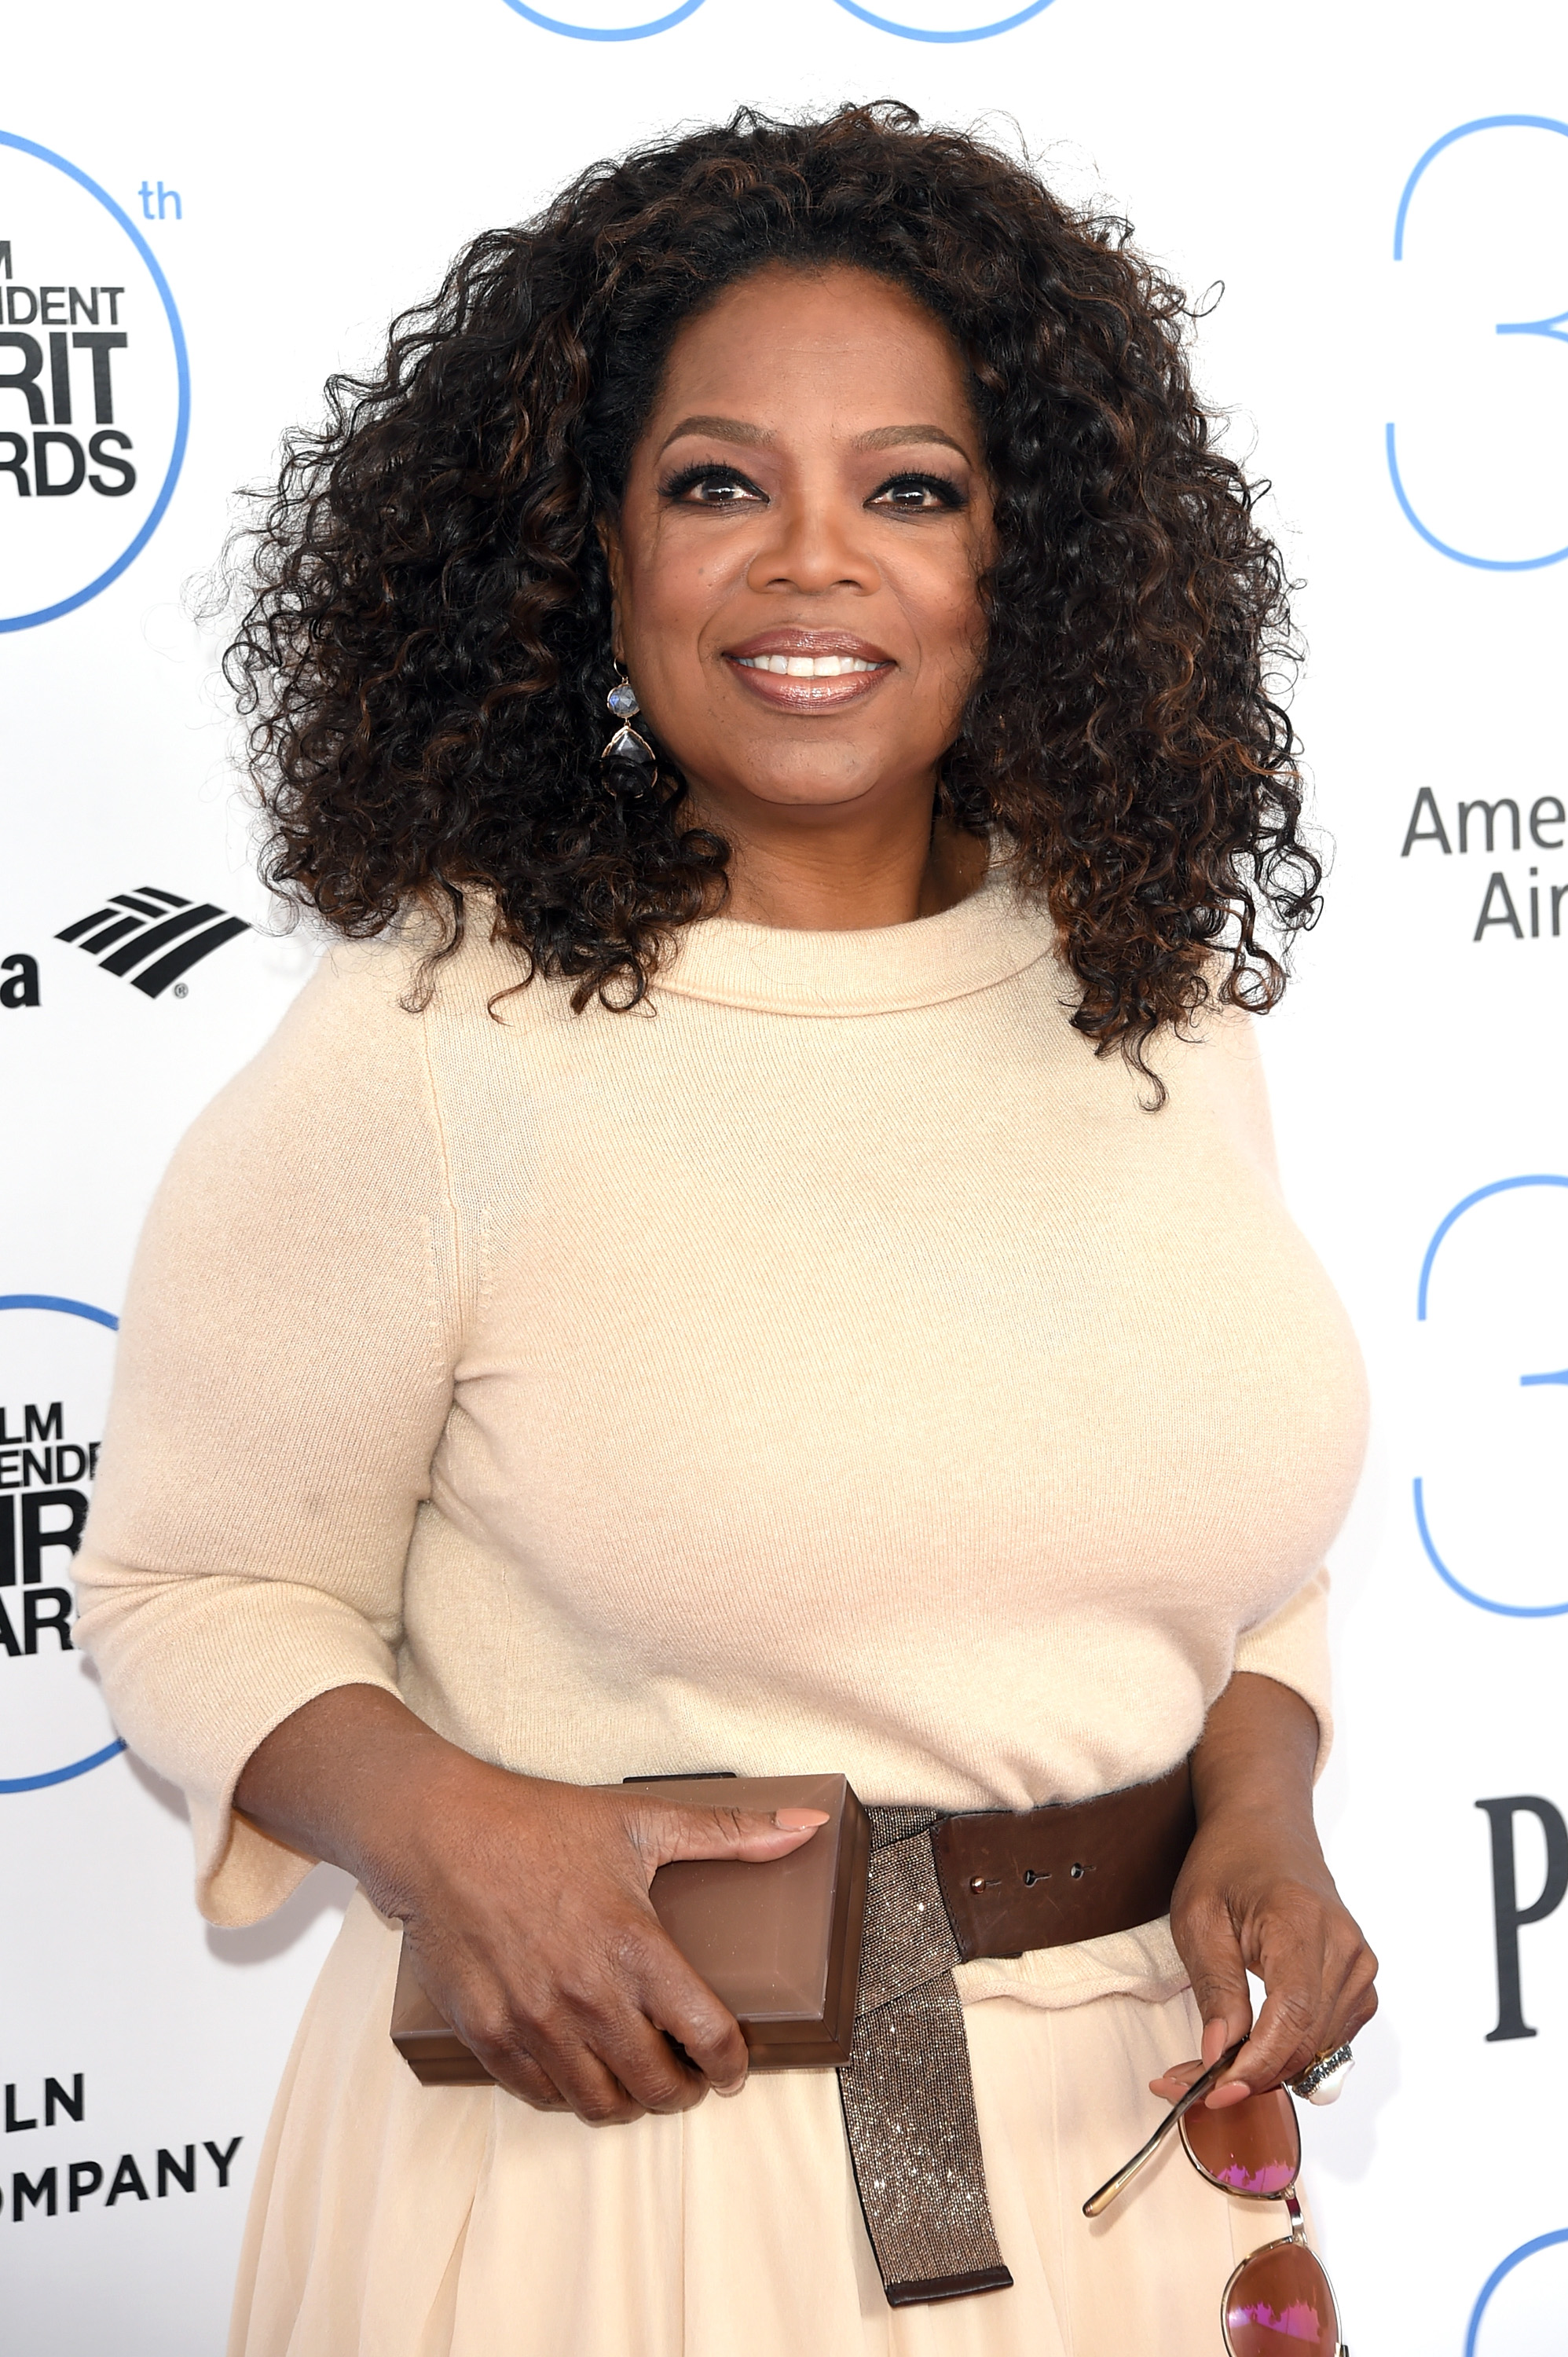 "Yes, it's officially that time of year. Media tycoon and talk show host Oprah Winfrey has revealed her annual list of  <a href=""https://homes.nine.com.au/2017/11/03/13/13/oprahs-favourite-things-for-2017"" target=""_blank"" draggable=""false"">favourite things </a>and this year the guide includes a pair of plush, Aussie-made slippers.<br /> <br /> Winfrey has named a pair of furry pink slip-ons from Melbourne-based brand Emu Australia as her must-have shoe of choice.<br /> <br /> ""My stepmother had furry pink slippers in 1968, and in 2017, chic women everywhere are wearing them out to lunch,"" Winfrey wrote on her official website.<br /> <br /> ""Give a pair to a stylish friend and make her day.""<br /> <br /> Even billionaires aren't above affordable footwear with the furry feet-warmers priced at $60 and being made from Australian sheepskin, the shoes are the perfect mix of feel-good comfort and laidback-chic. <br /> <br /> Furry slides haven't just been given Oprah's blessing. Rihanna, Gigi Hadid and Sofia Richie have been snapped stepping out in style in a pair of cool slides.<br /> <br /> And Fenty X Puma, Gucci and Prada have all sent their own take on furry footwear down the runway.<br /> <br /> Get in step with footwear's most comfortable shoe trend with our pick of ten must-have furry slides."